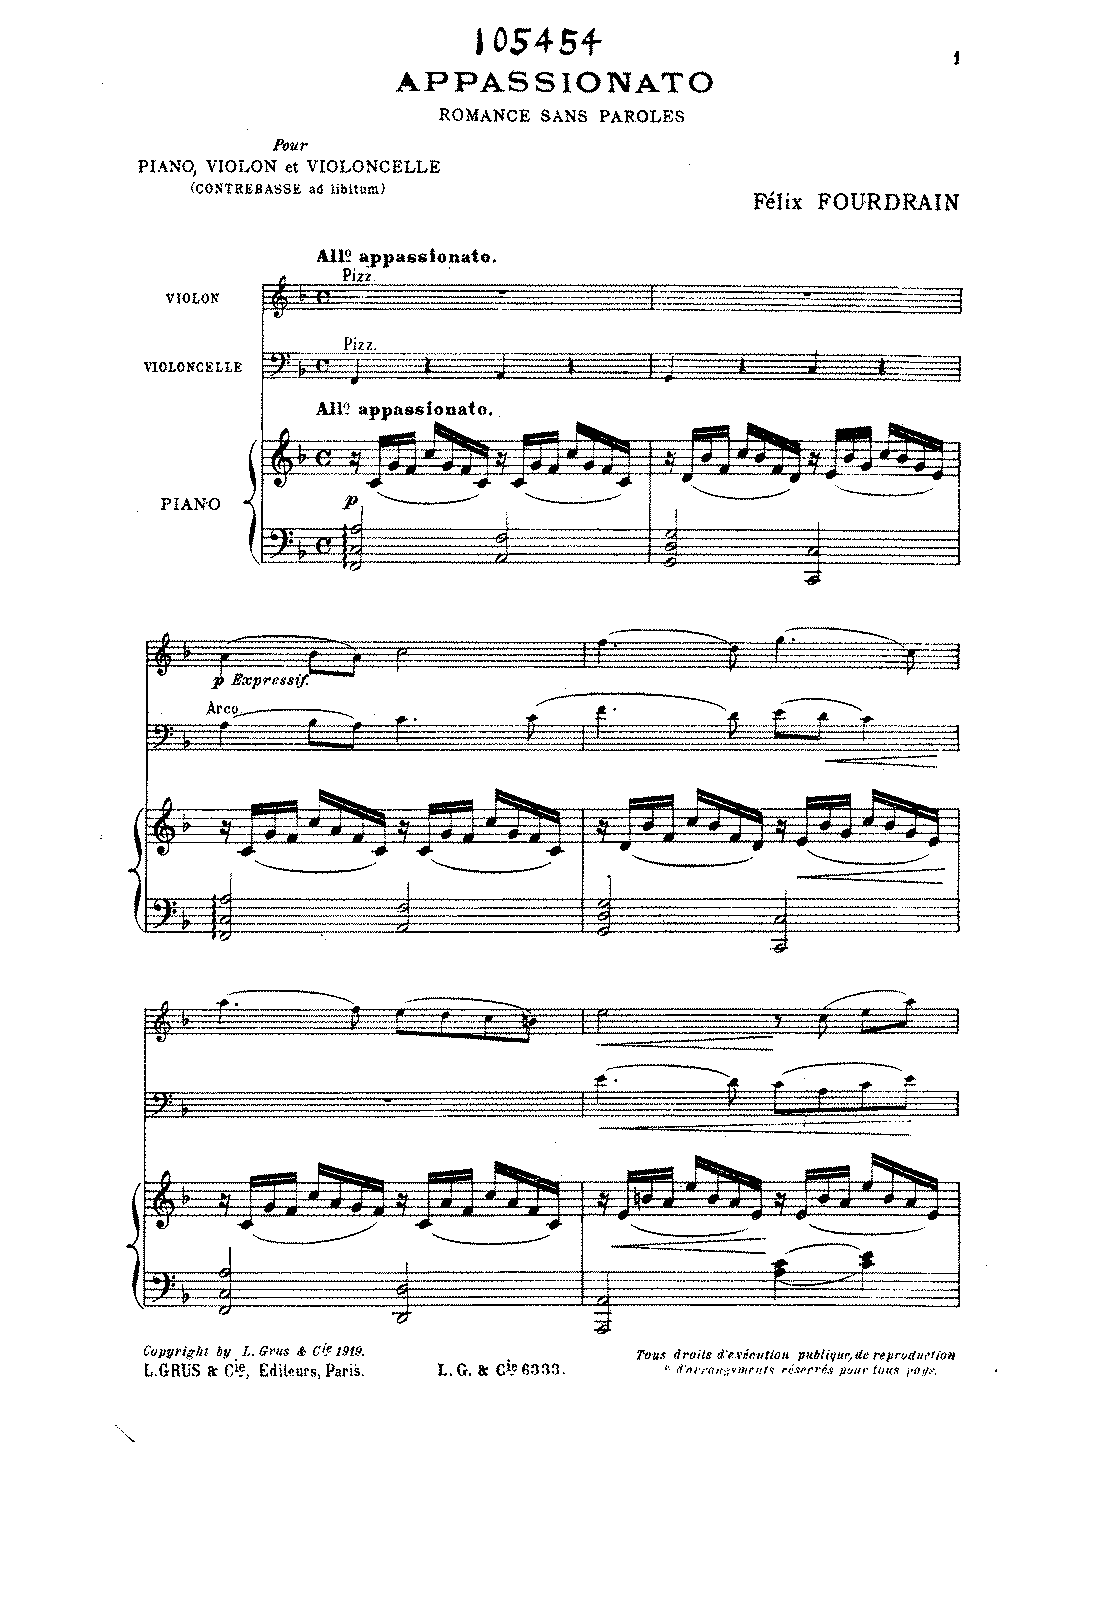 PMLP82296-Fourdrain - Appassionato Romance sans paroles PianoTrio piano.pdf